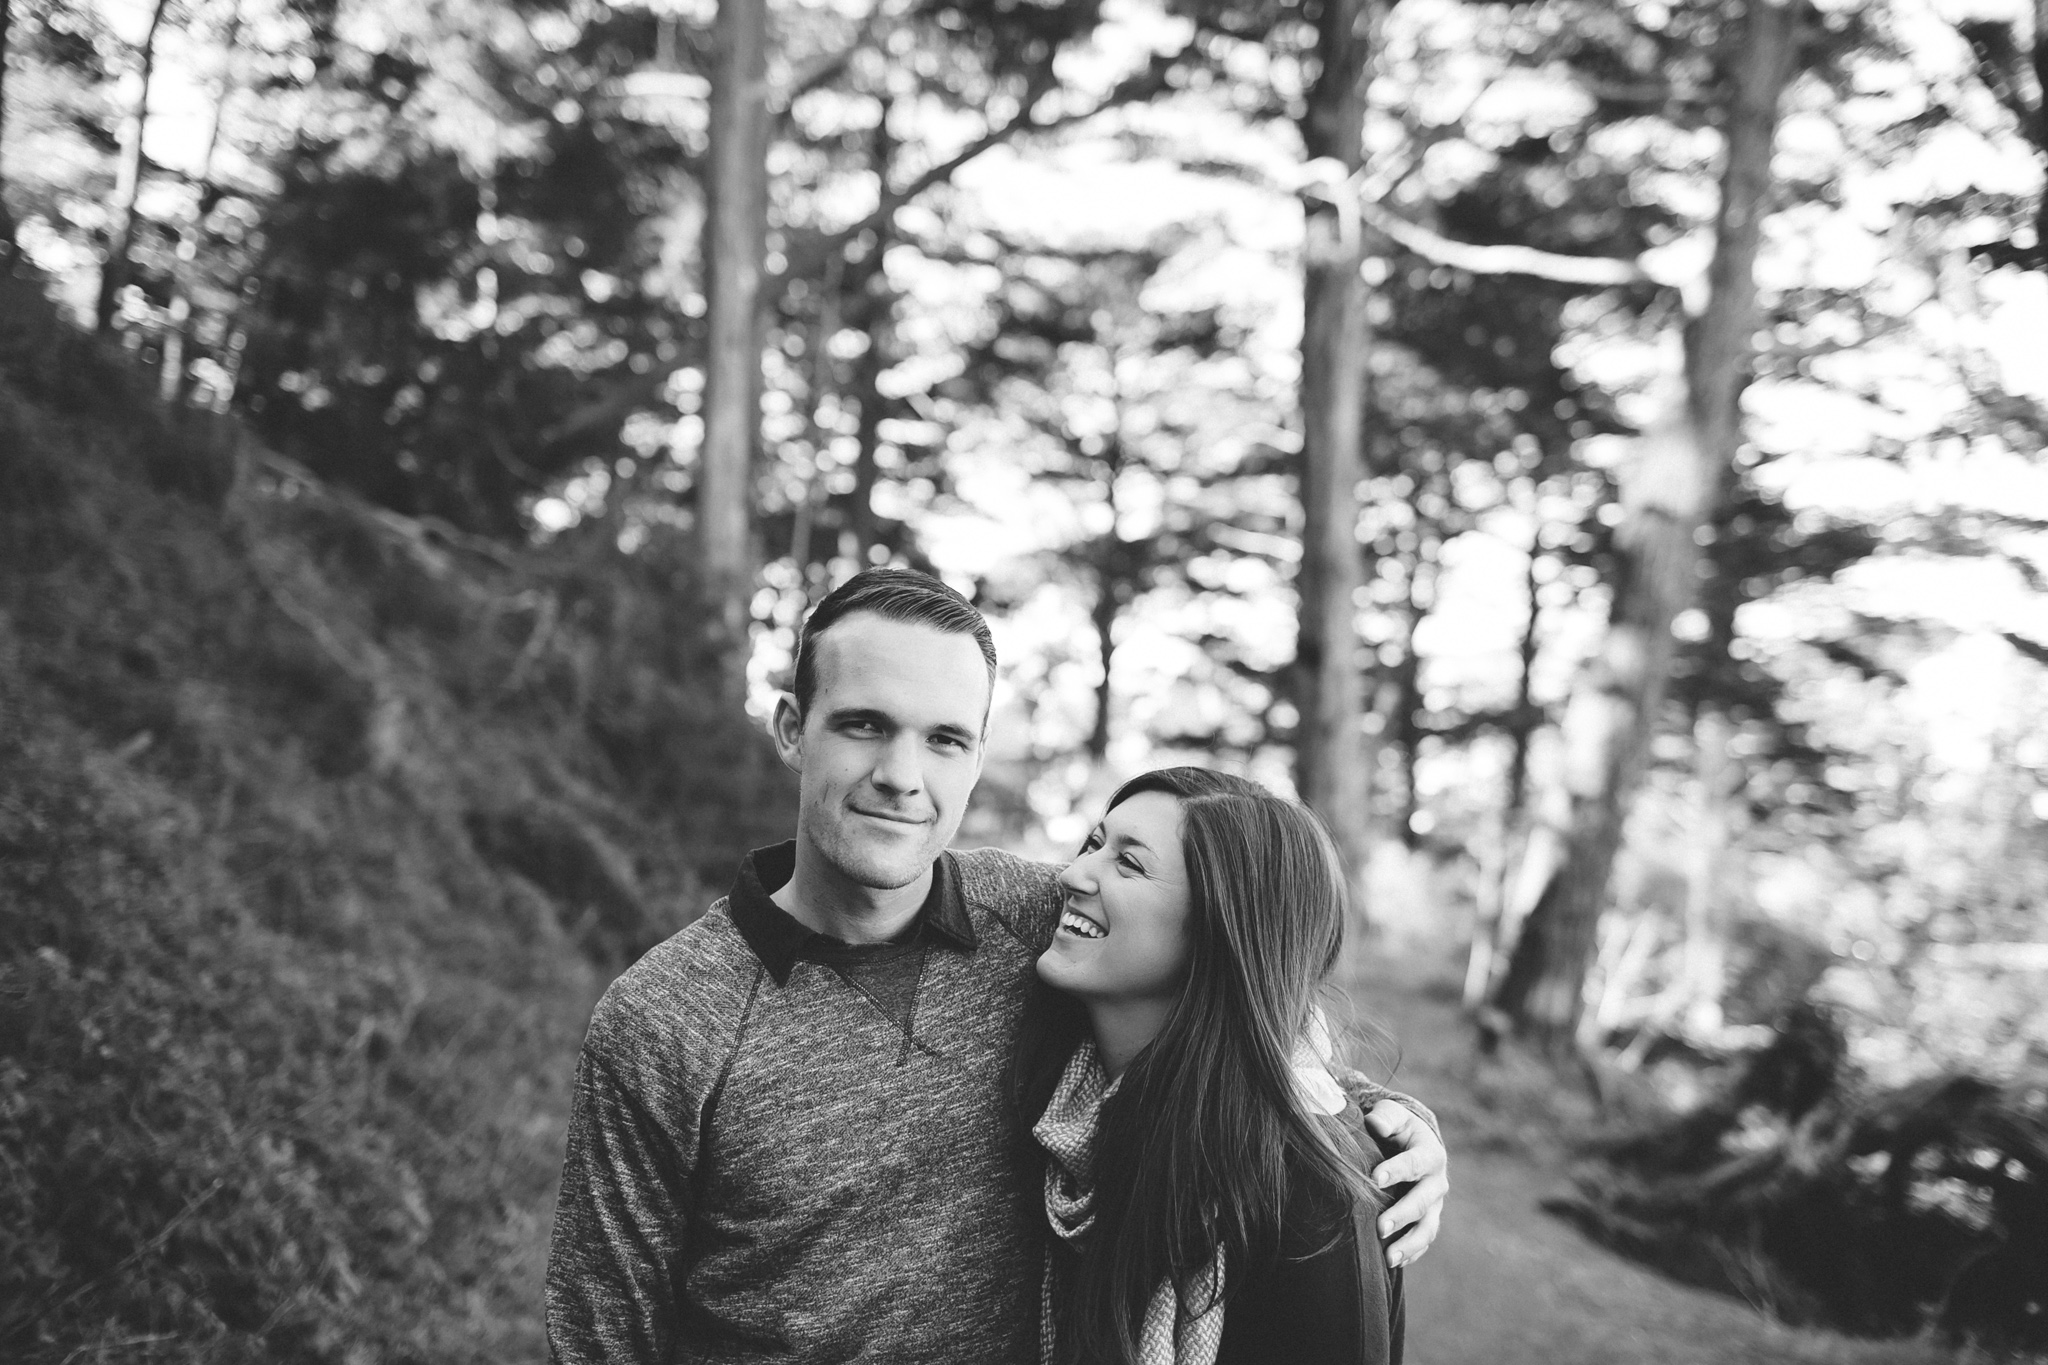 Sunee+Adam-Proposal-KellyBoitanoPhotography_WEB20151229_0050